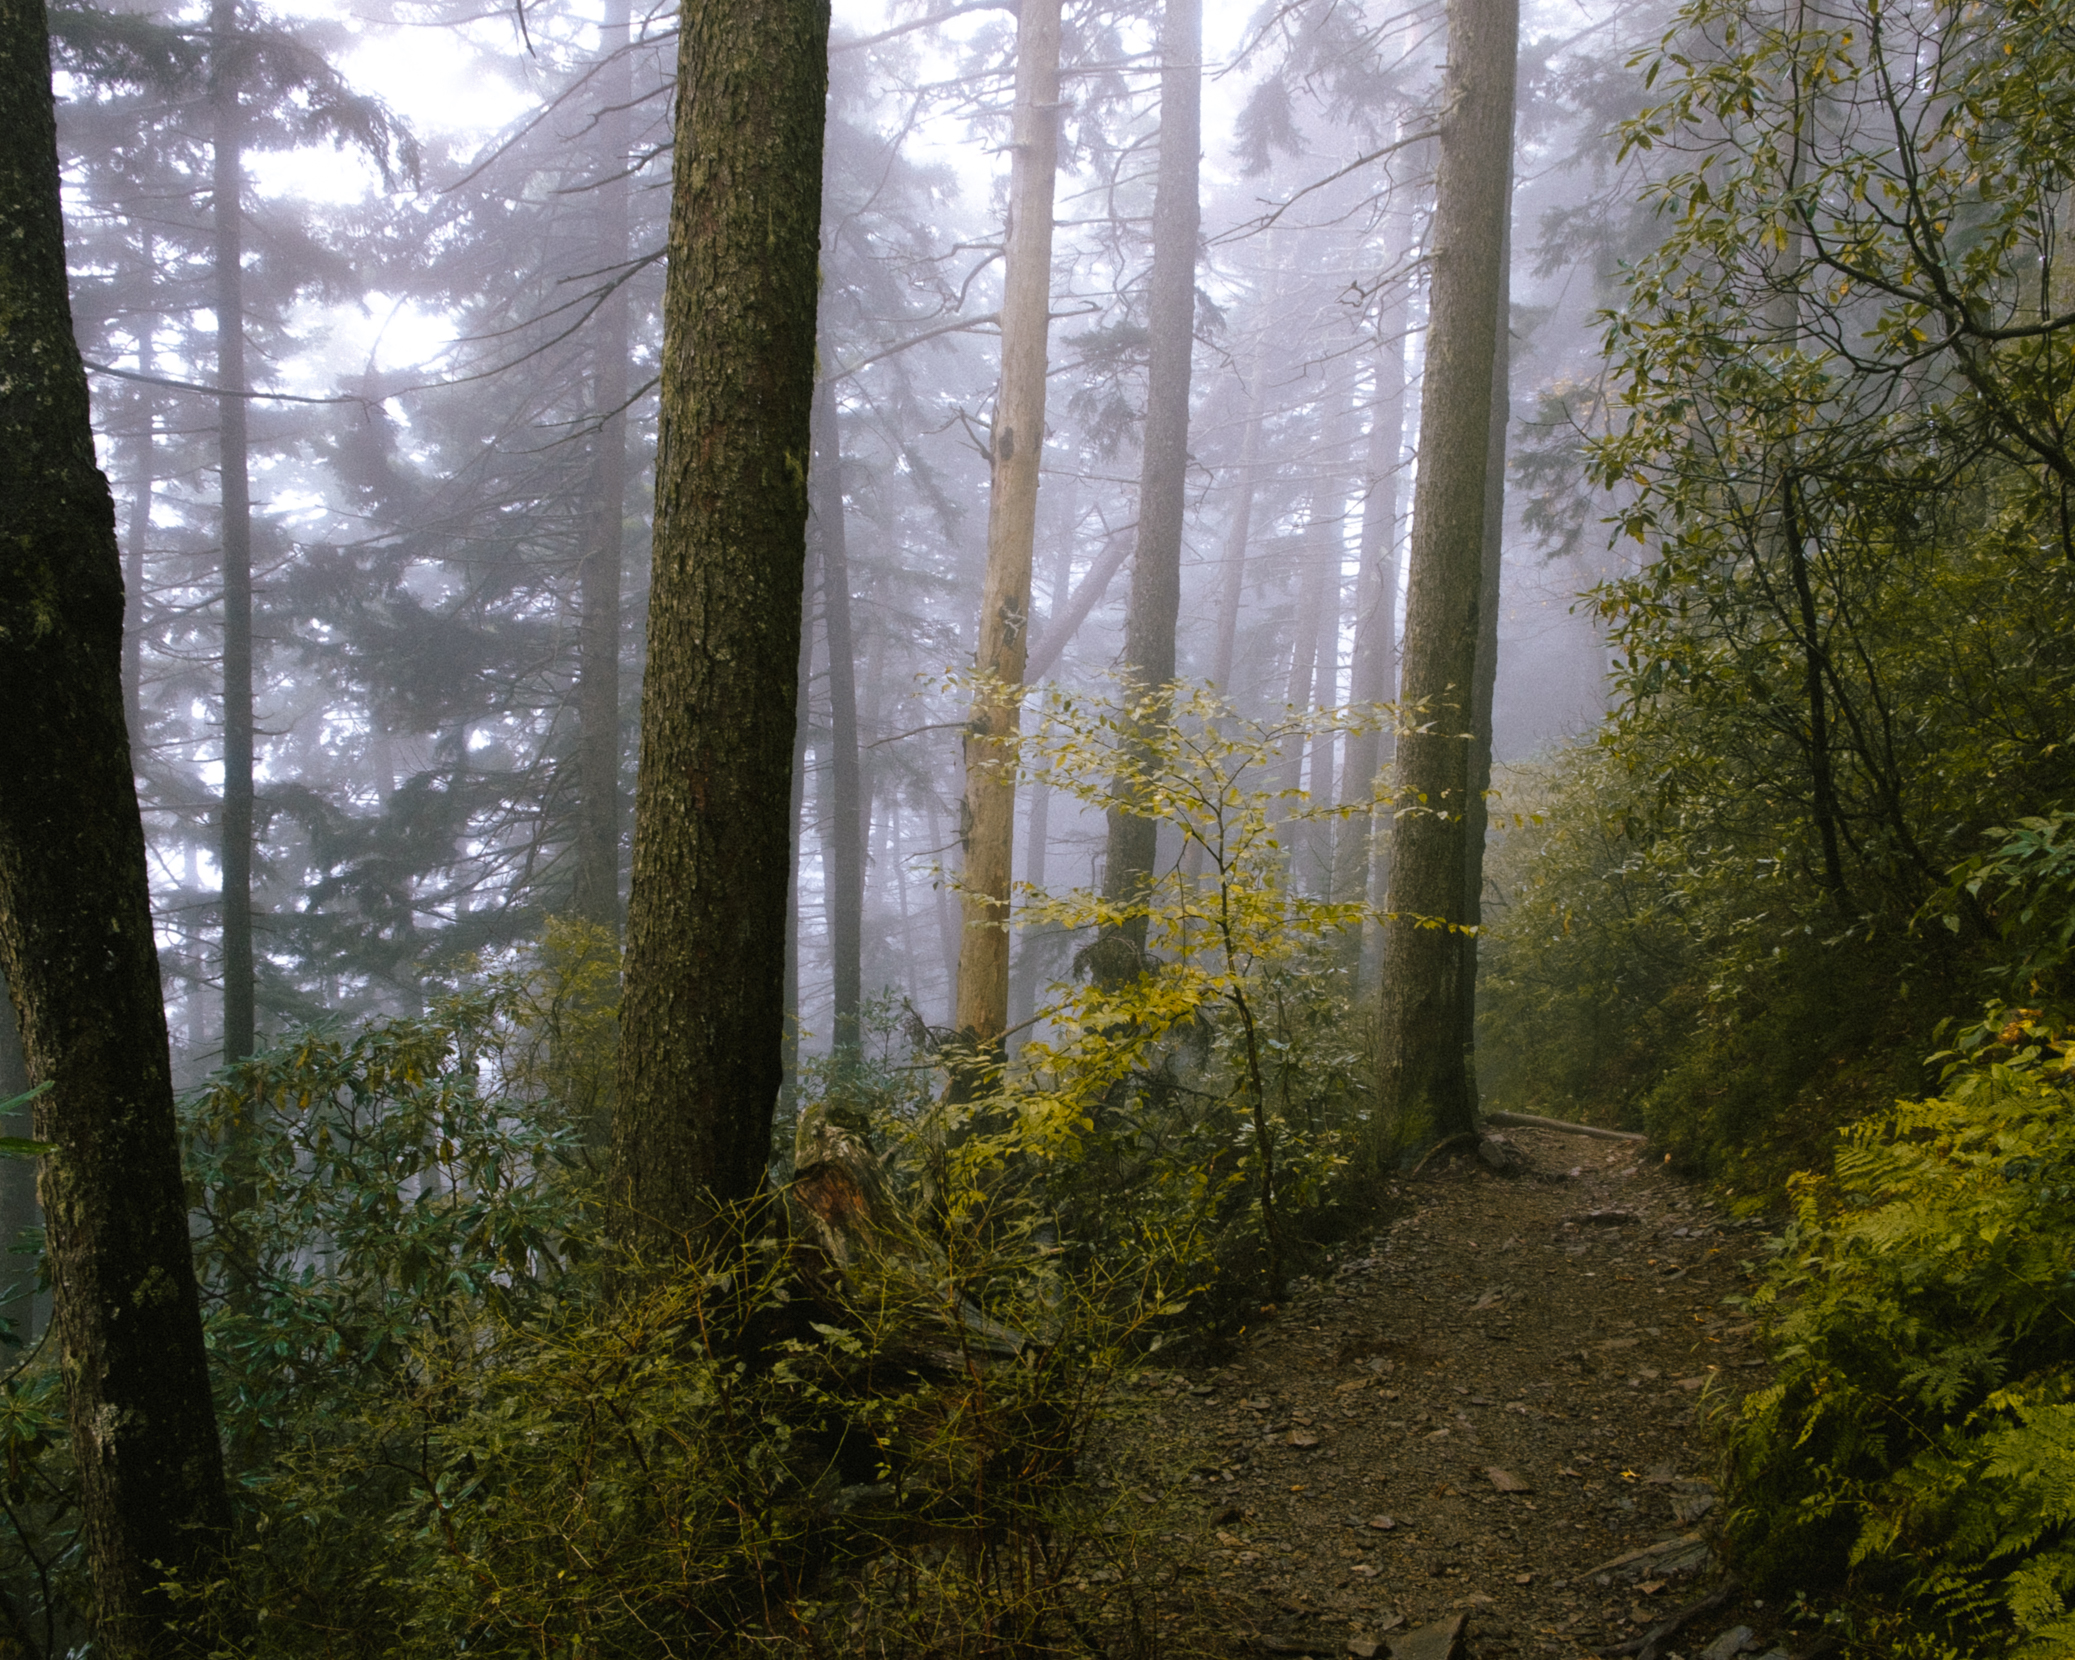 Fog drifting through the trees on the hike back down